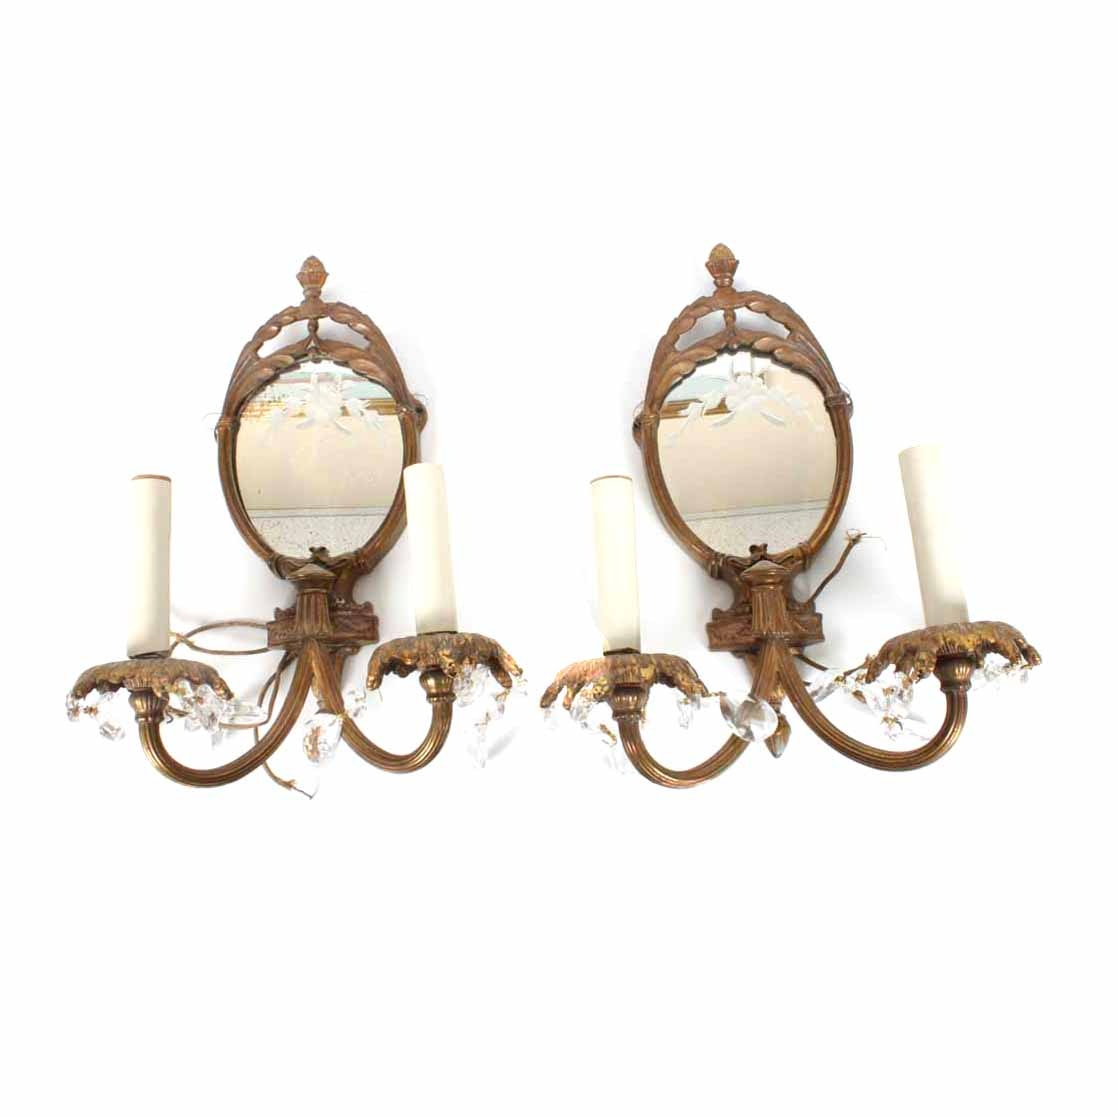 Two Vintage Electric Wall Sconces with Mirrors